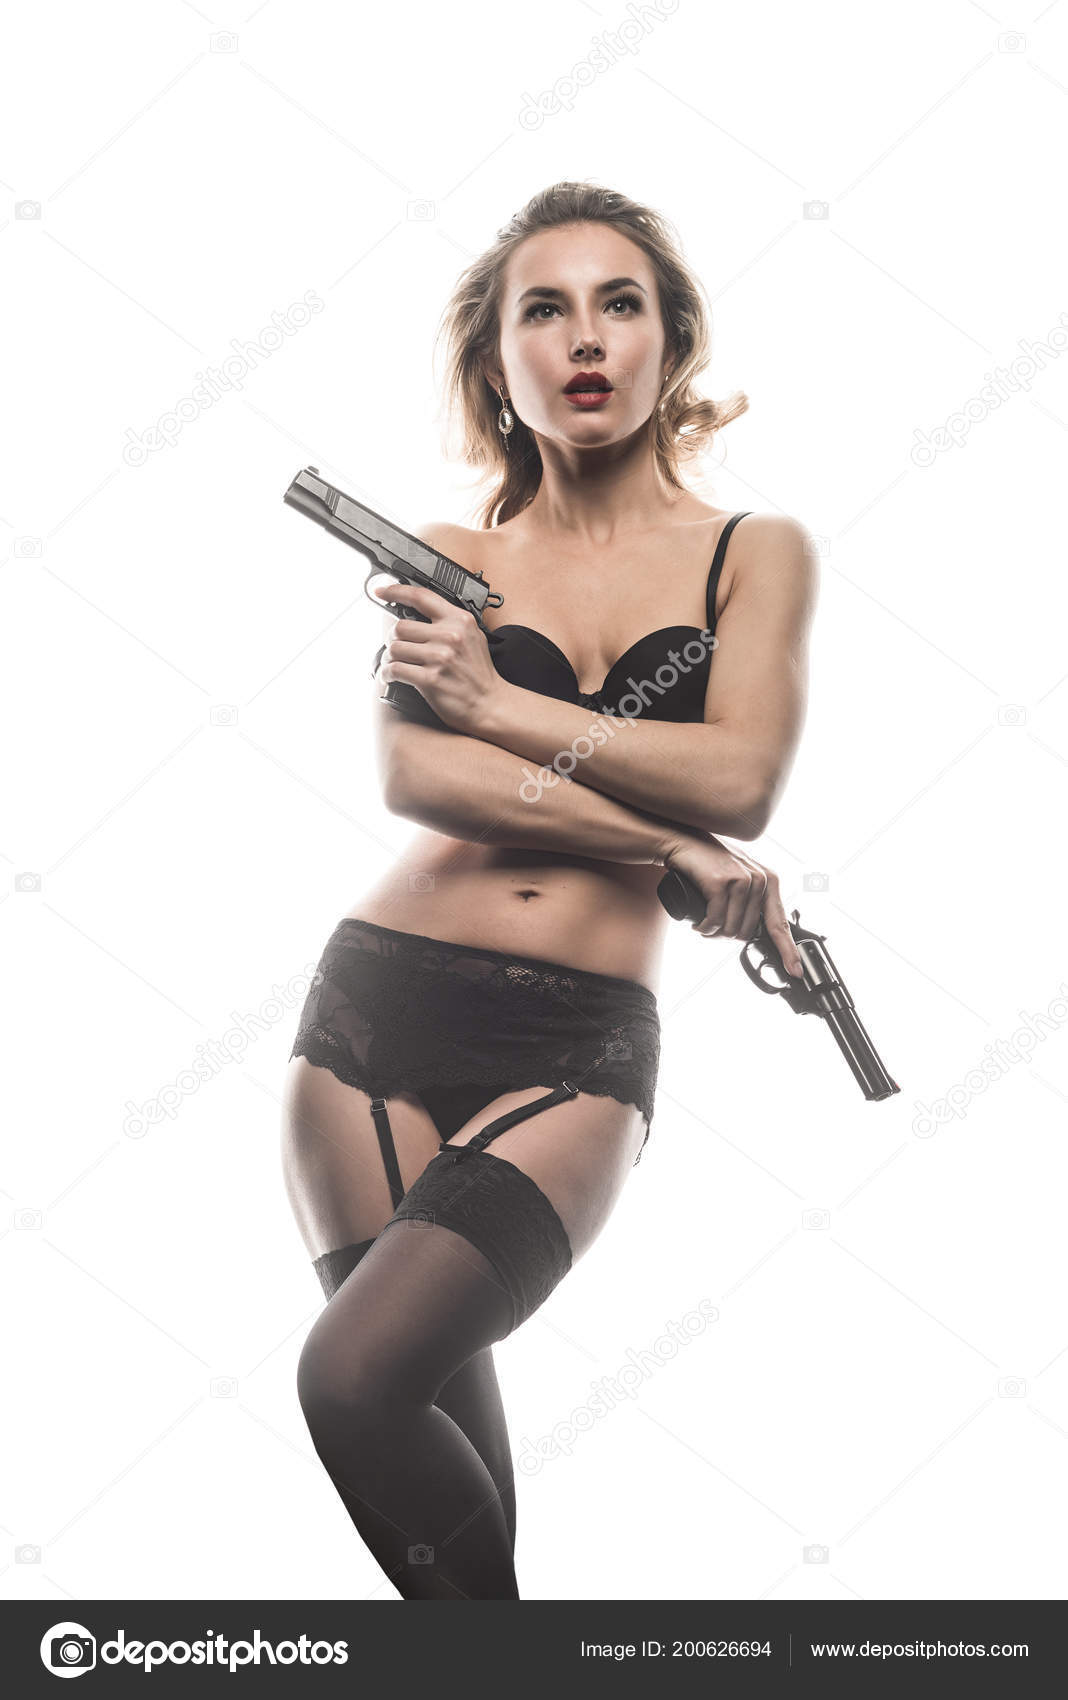 Arme Sexy fille gangster sexy avec arme poing sur fond blanc — photographie